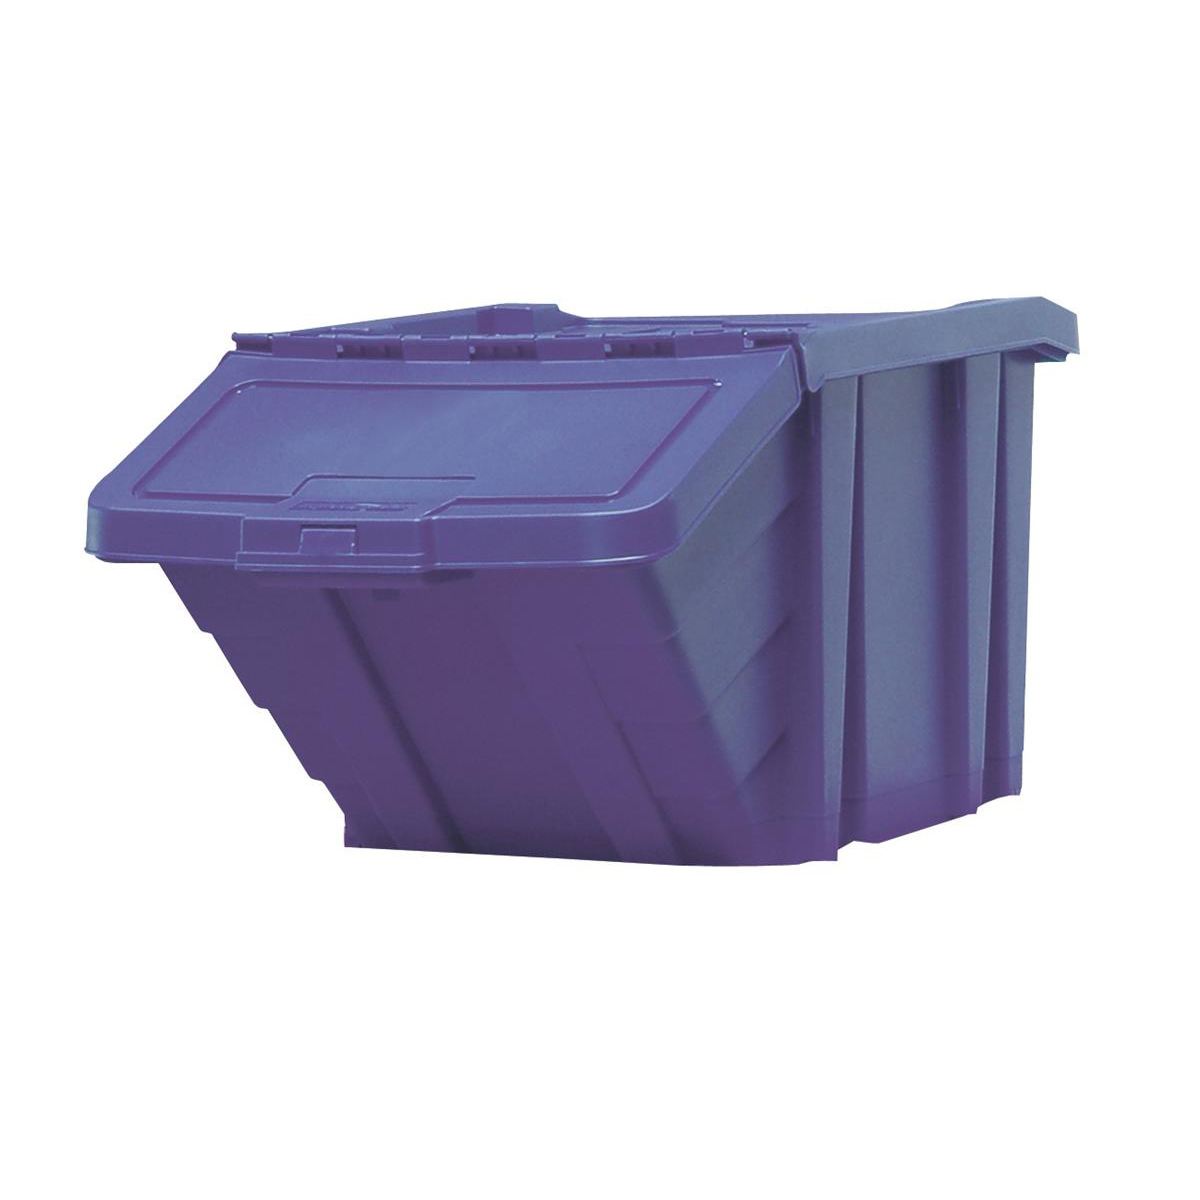 Containers Recycle Storage Bin and Lid Blue 400x635x345mm